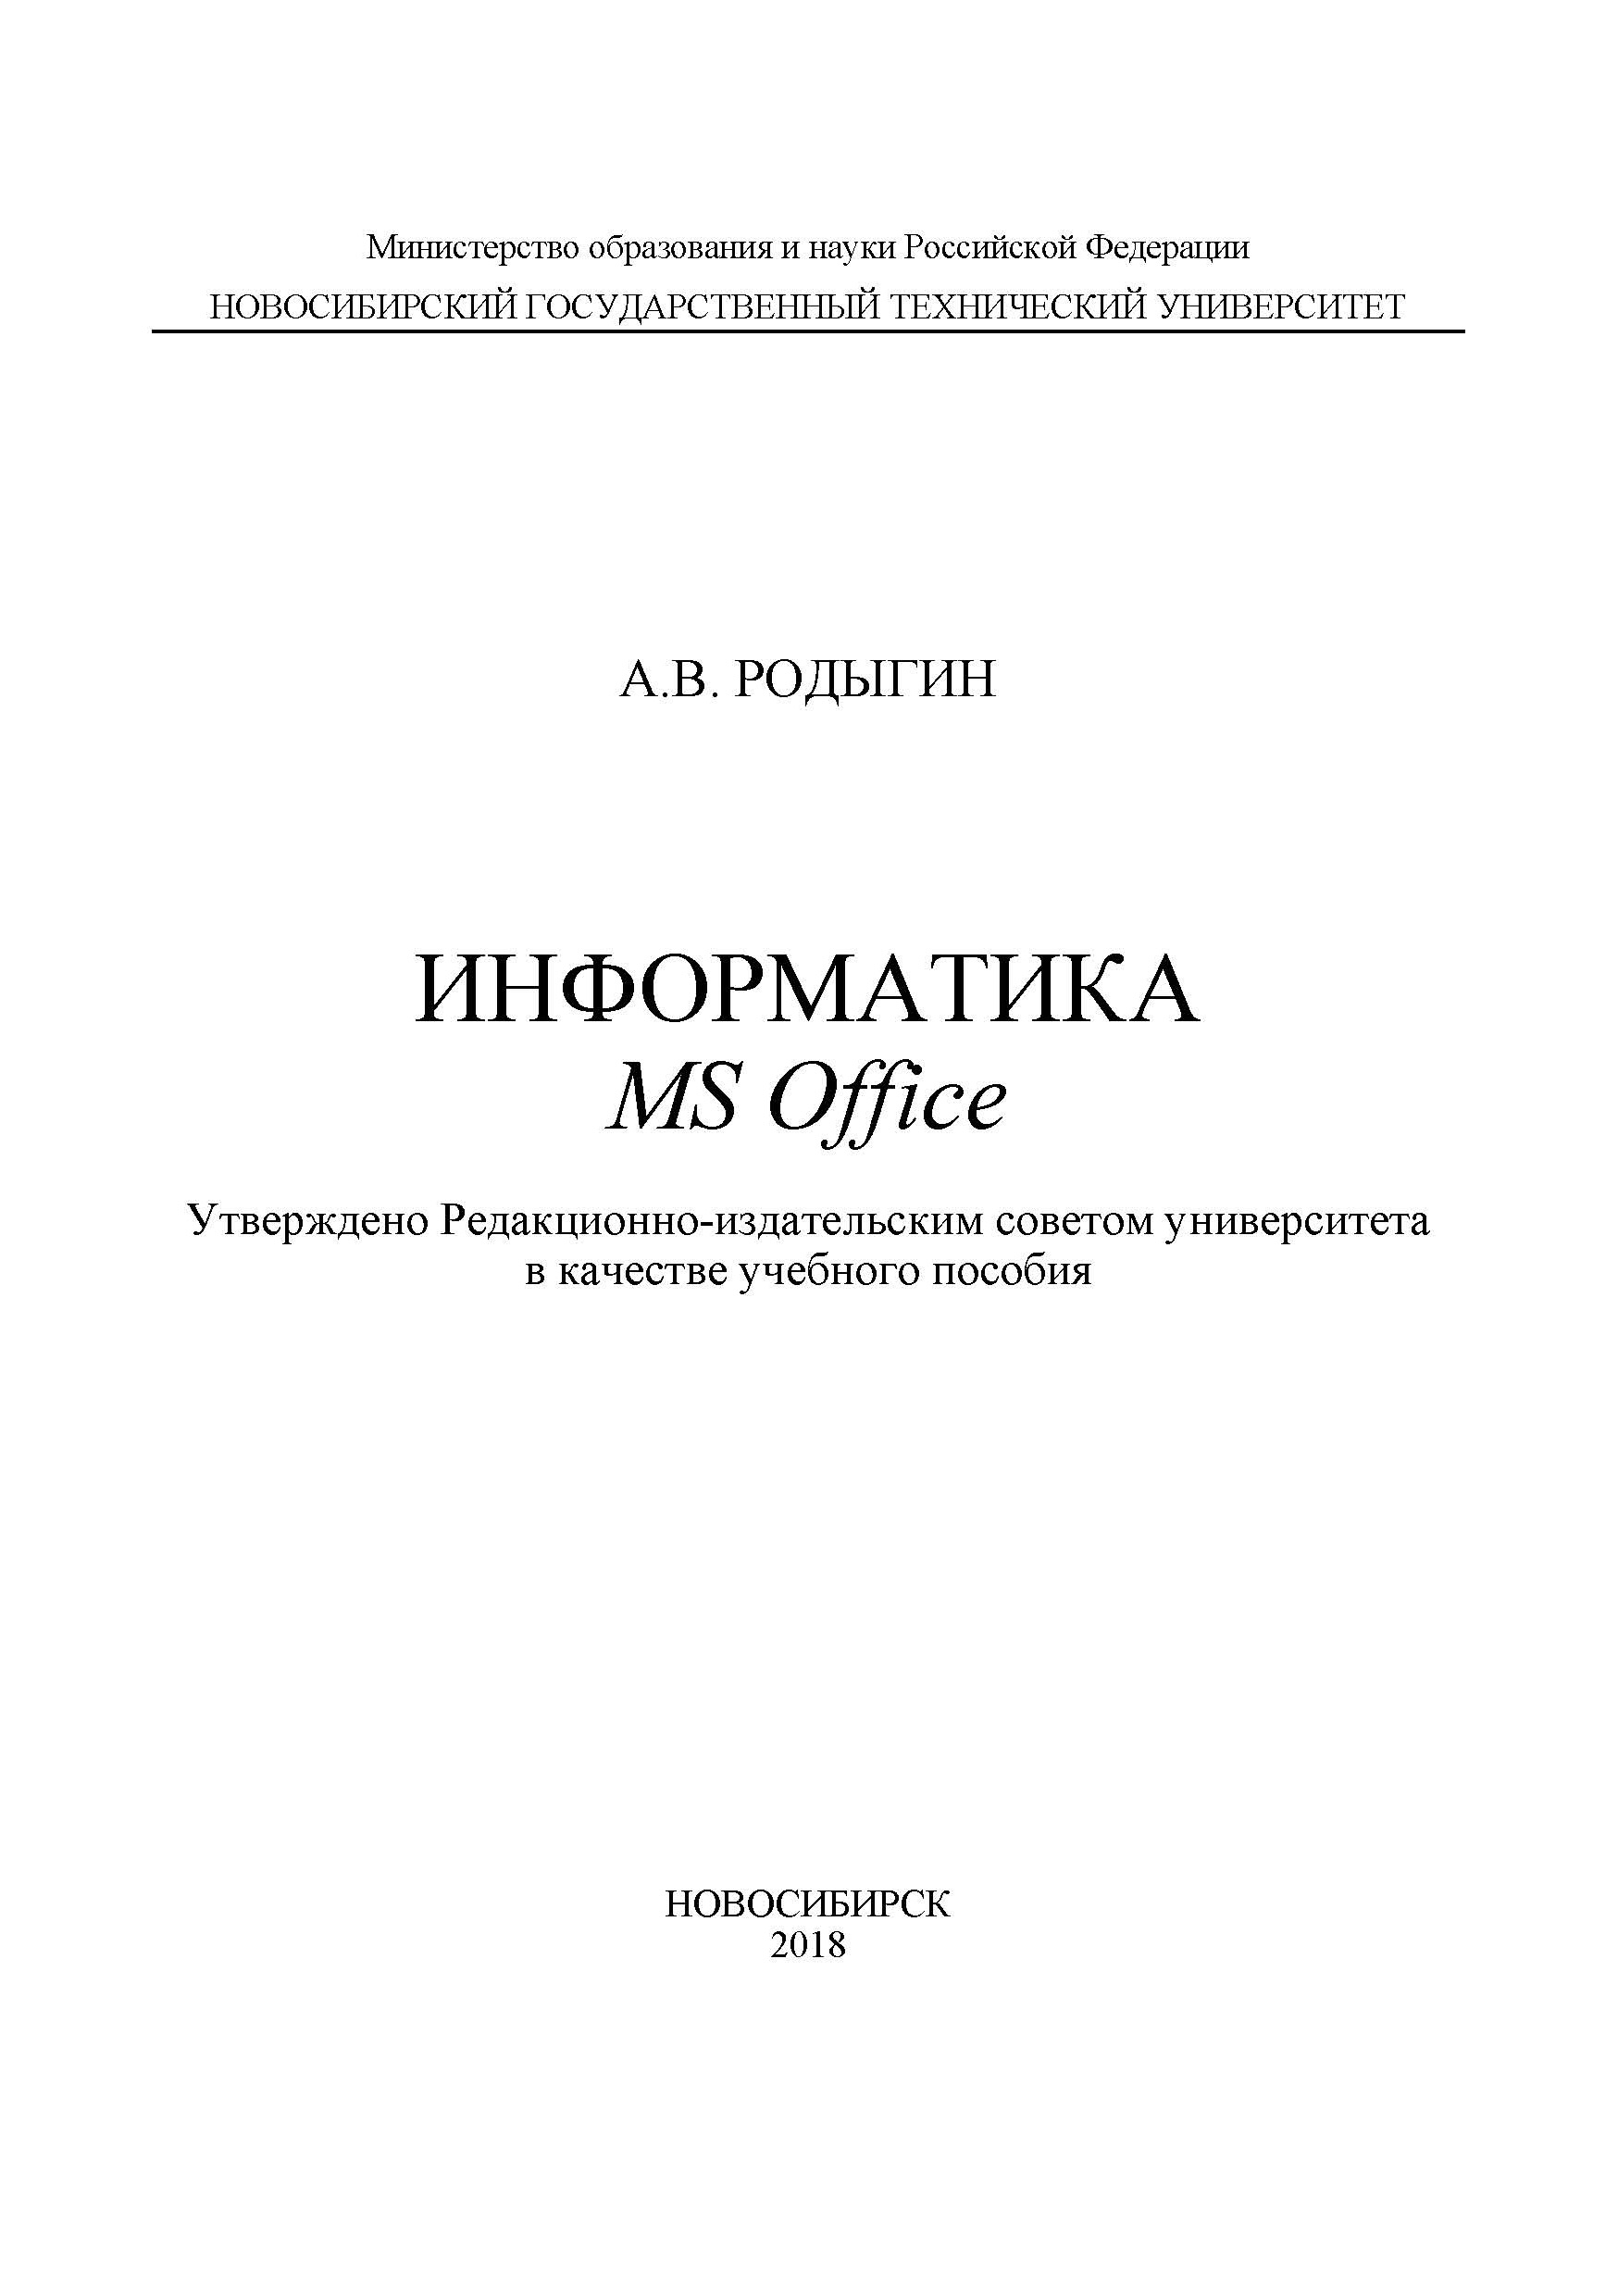 Информатика. MS Office